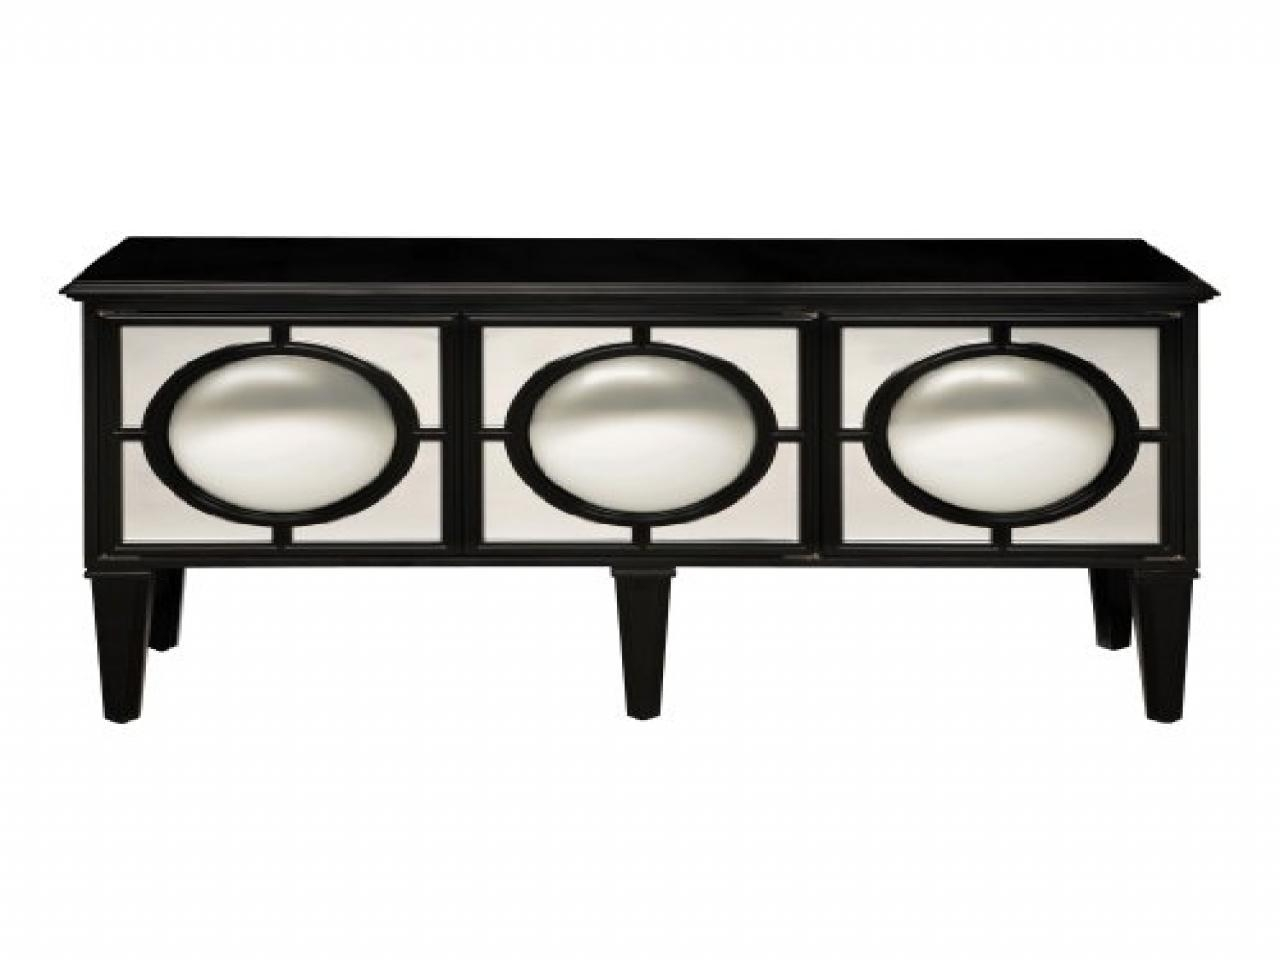 Dining Room Slipcovers, Mirrored Chest Or Cabinet Black Circles In Black Mirrored Cabinet (Image 9 of 20)